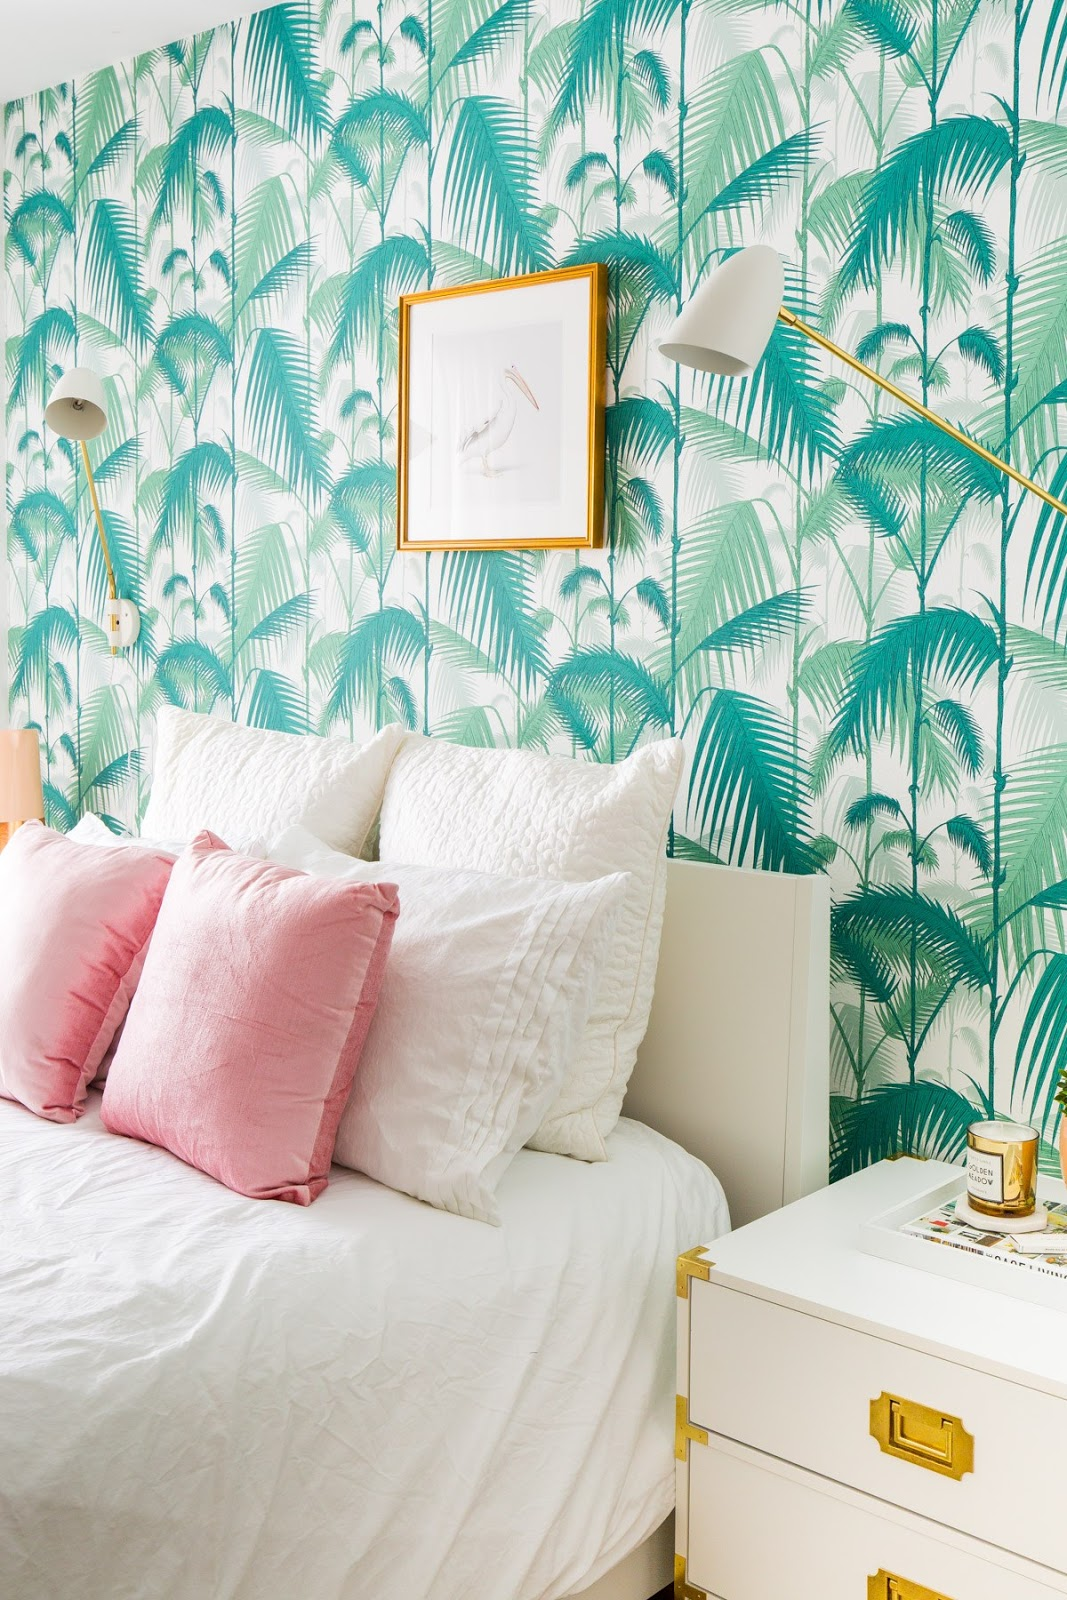 These Photos Will Make You Reconsider Wallpaper | Kayla Lynn